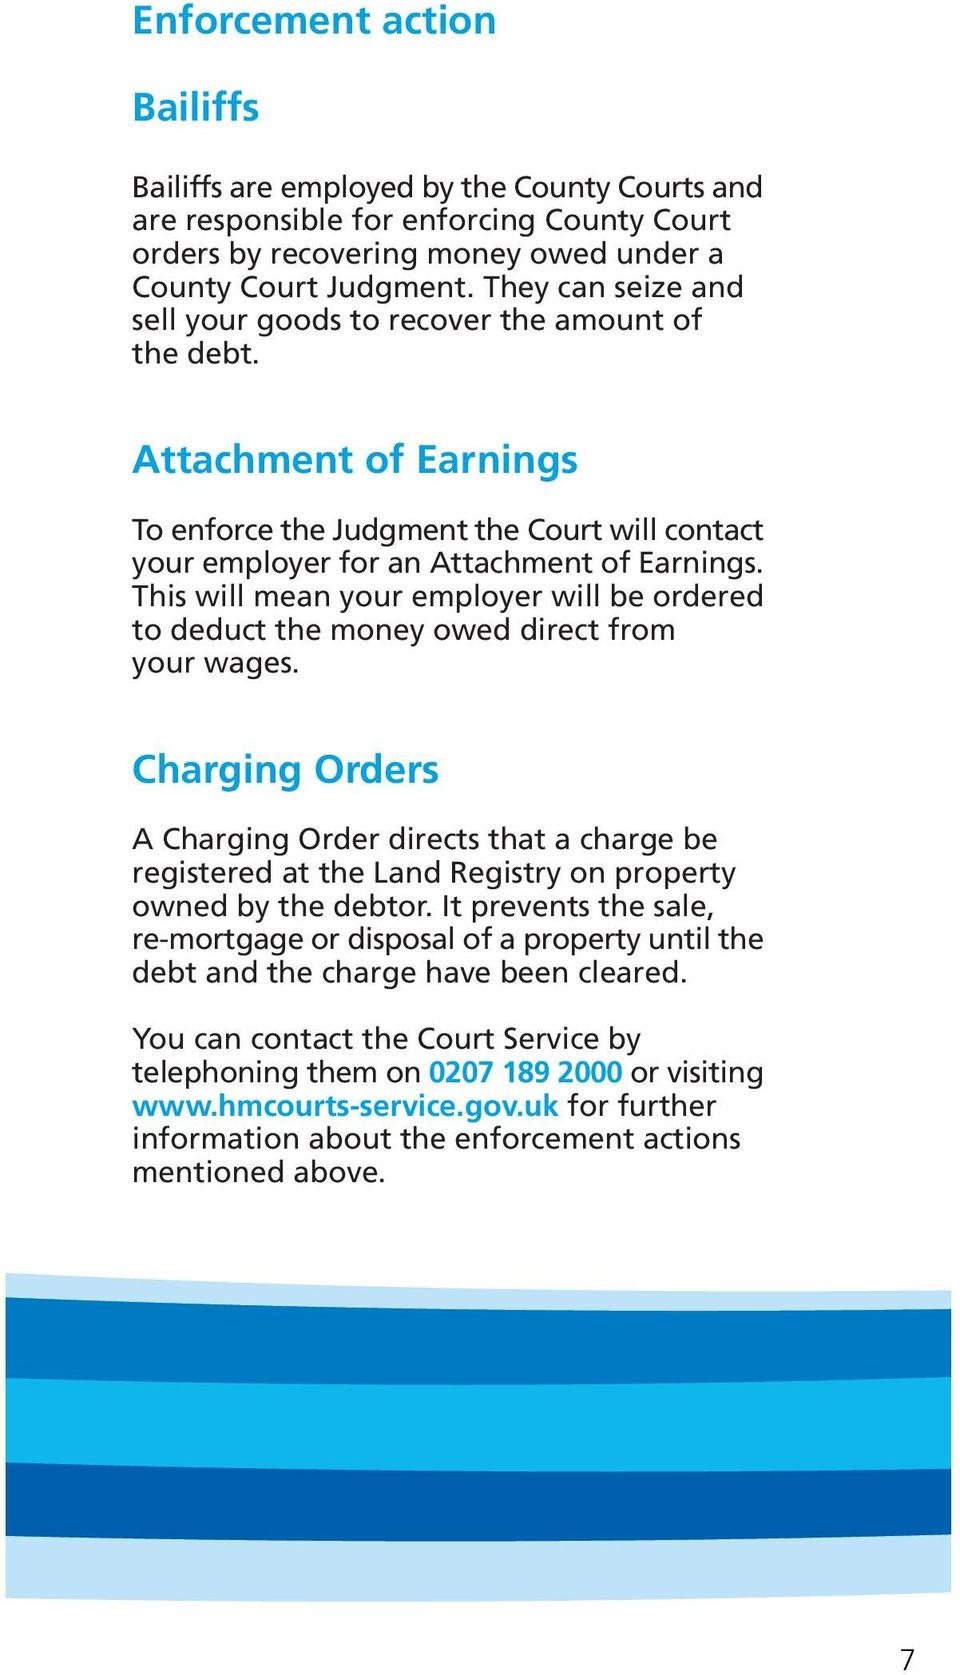 This will mean your employer will be ordered to deduct the money owed direct from your wages.